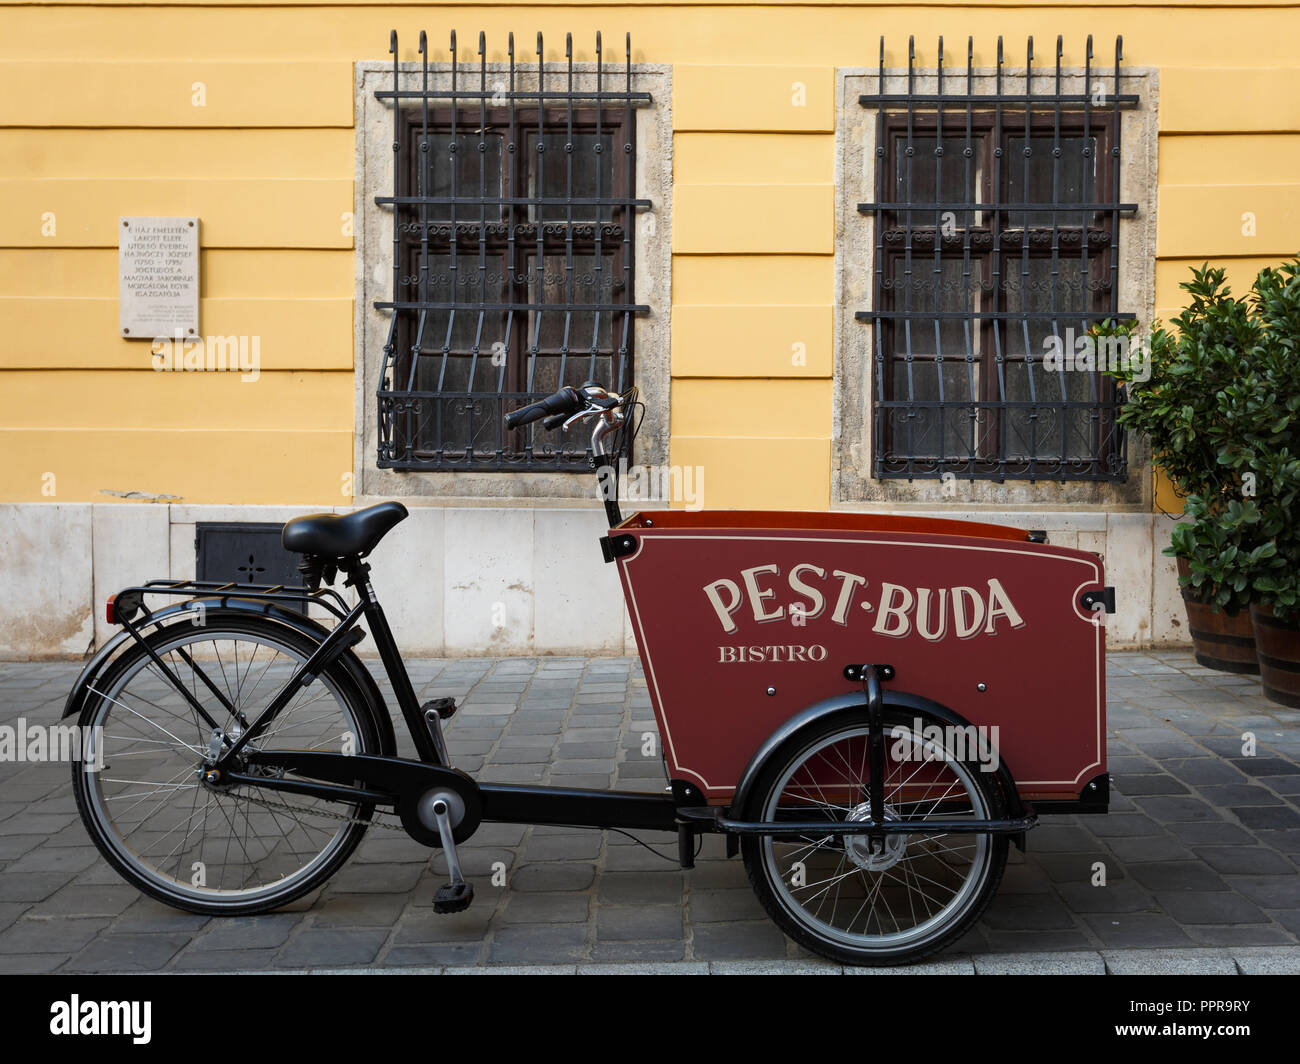 Budapest, Hungary - August 16, 2018: Tricycle advertisement of Pest-Buda bistro in historic city centre of Budapest, Hungary. - Stock Image